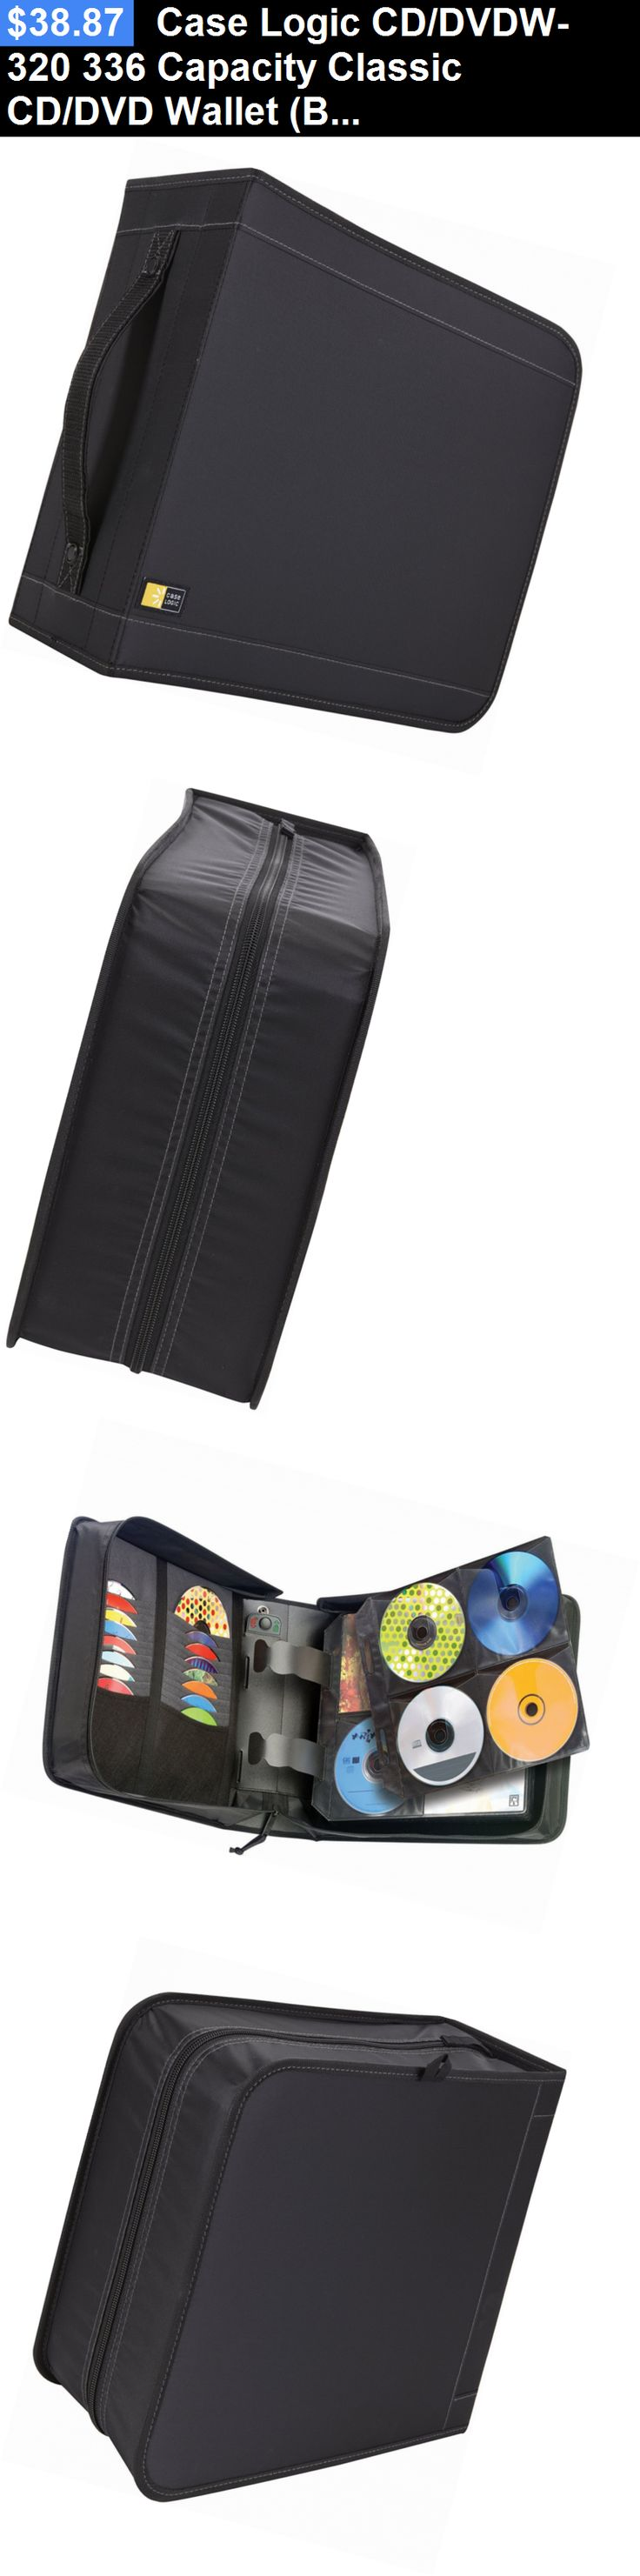 Media Cases and Storage: Case Logic Cd/Dvdw-320 336 Capacity Classic Cd/Dvd Wallet (Black) BUY IT NOW ONLY: $38.87